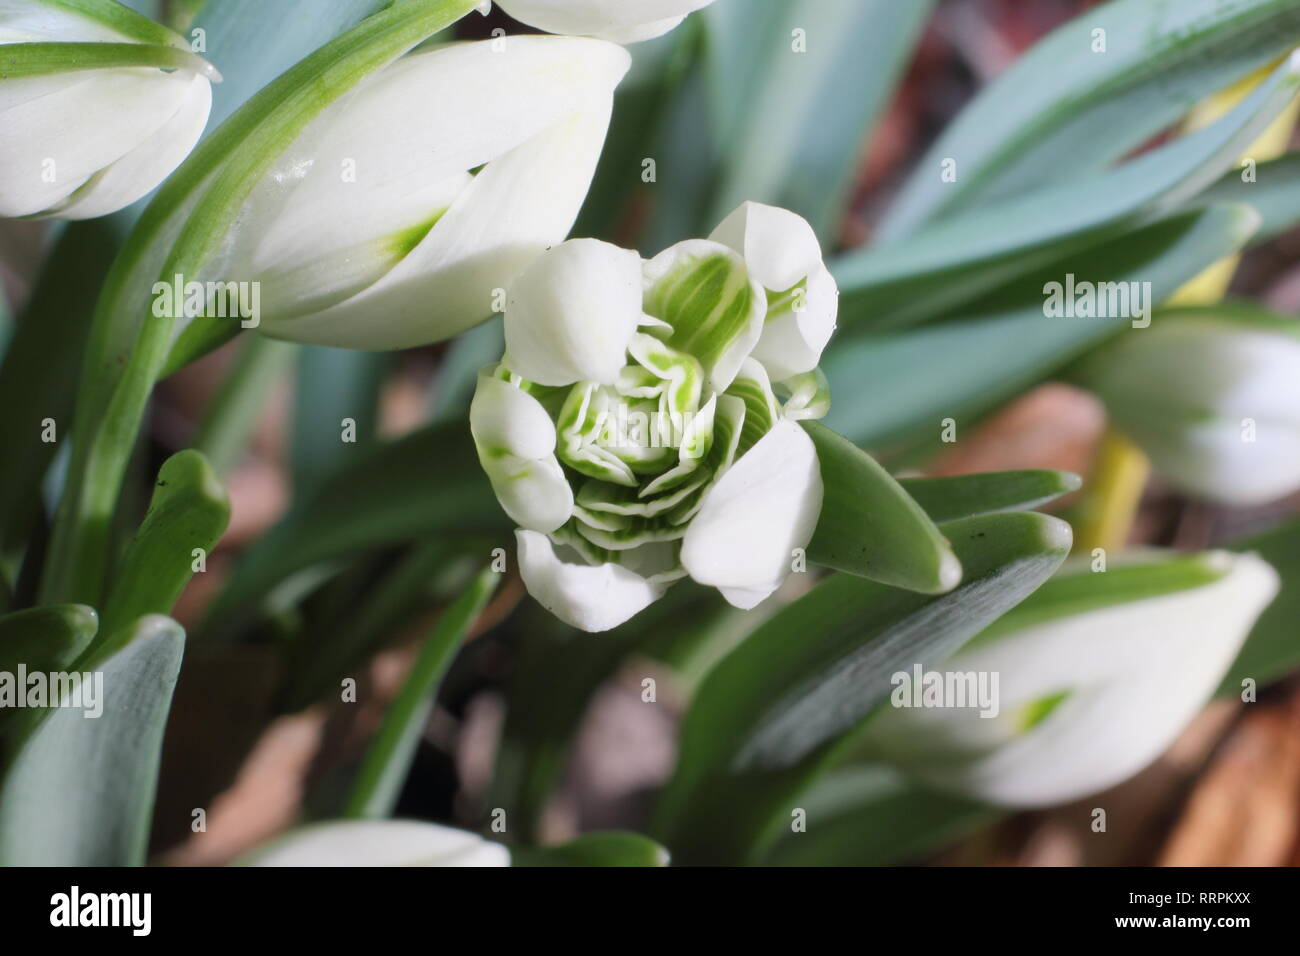 Galanthus 'Hill Poe'. Winter flower of Snowdrop Hill Poe, noted for its tightly packed inner rosette, emerge in an English garden - February, UK - Stock Image